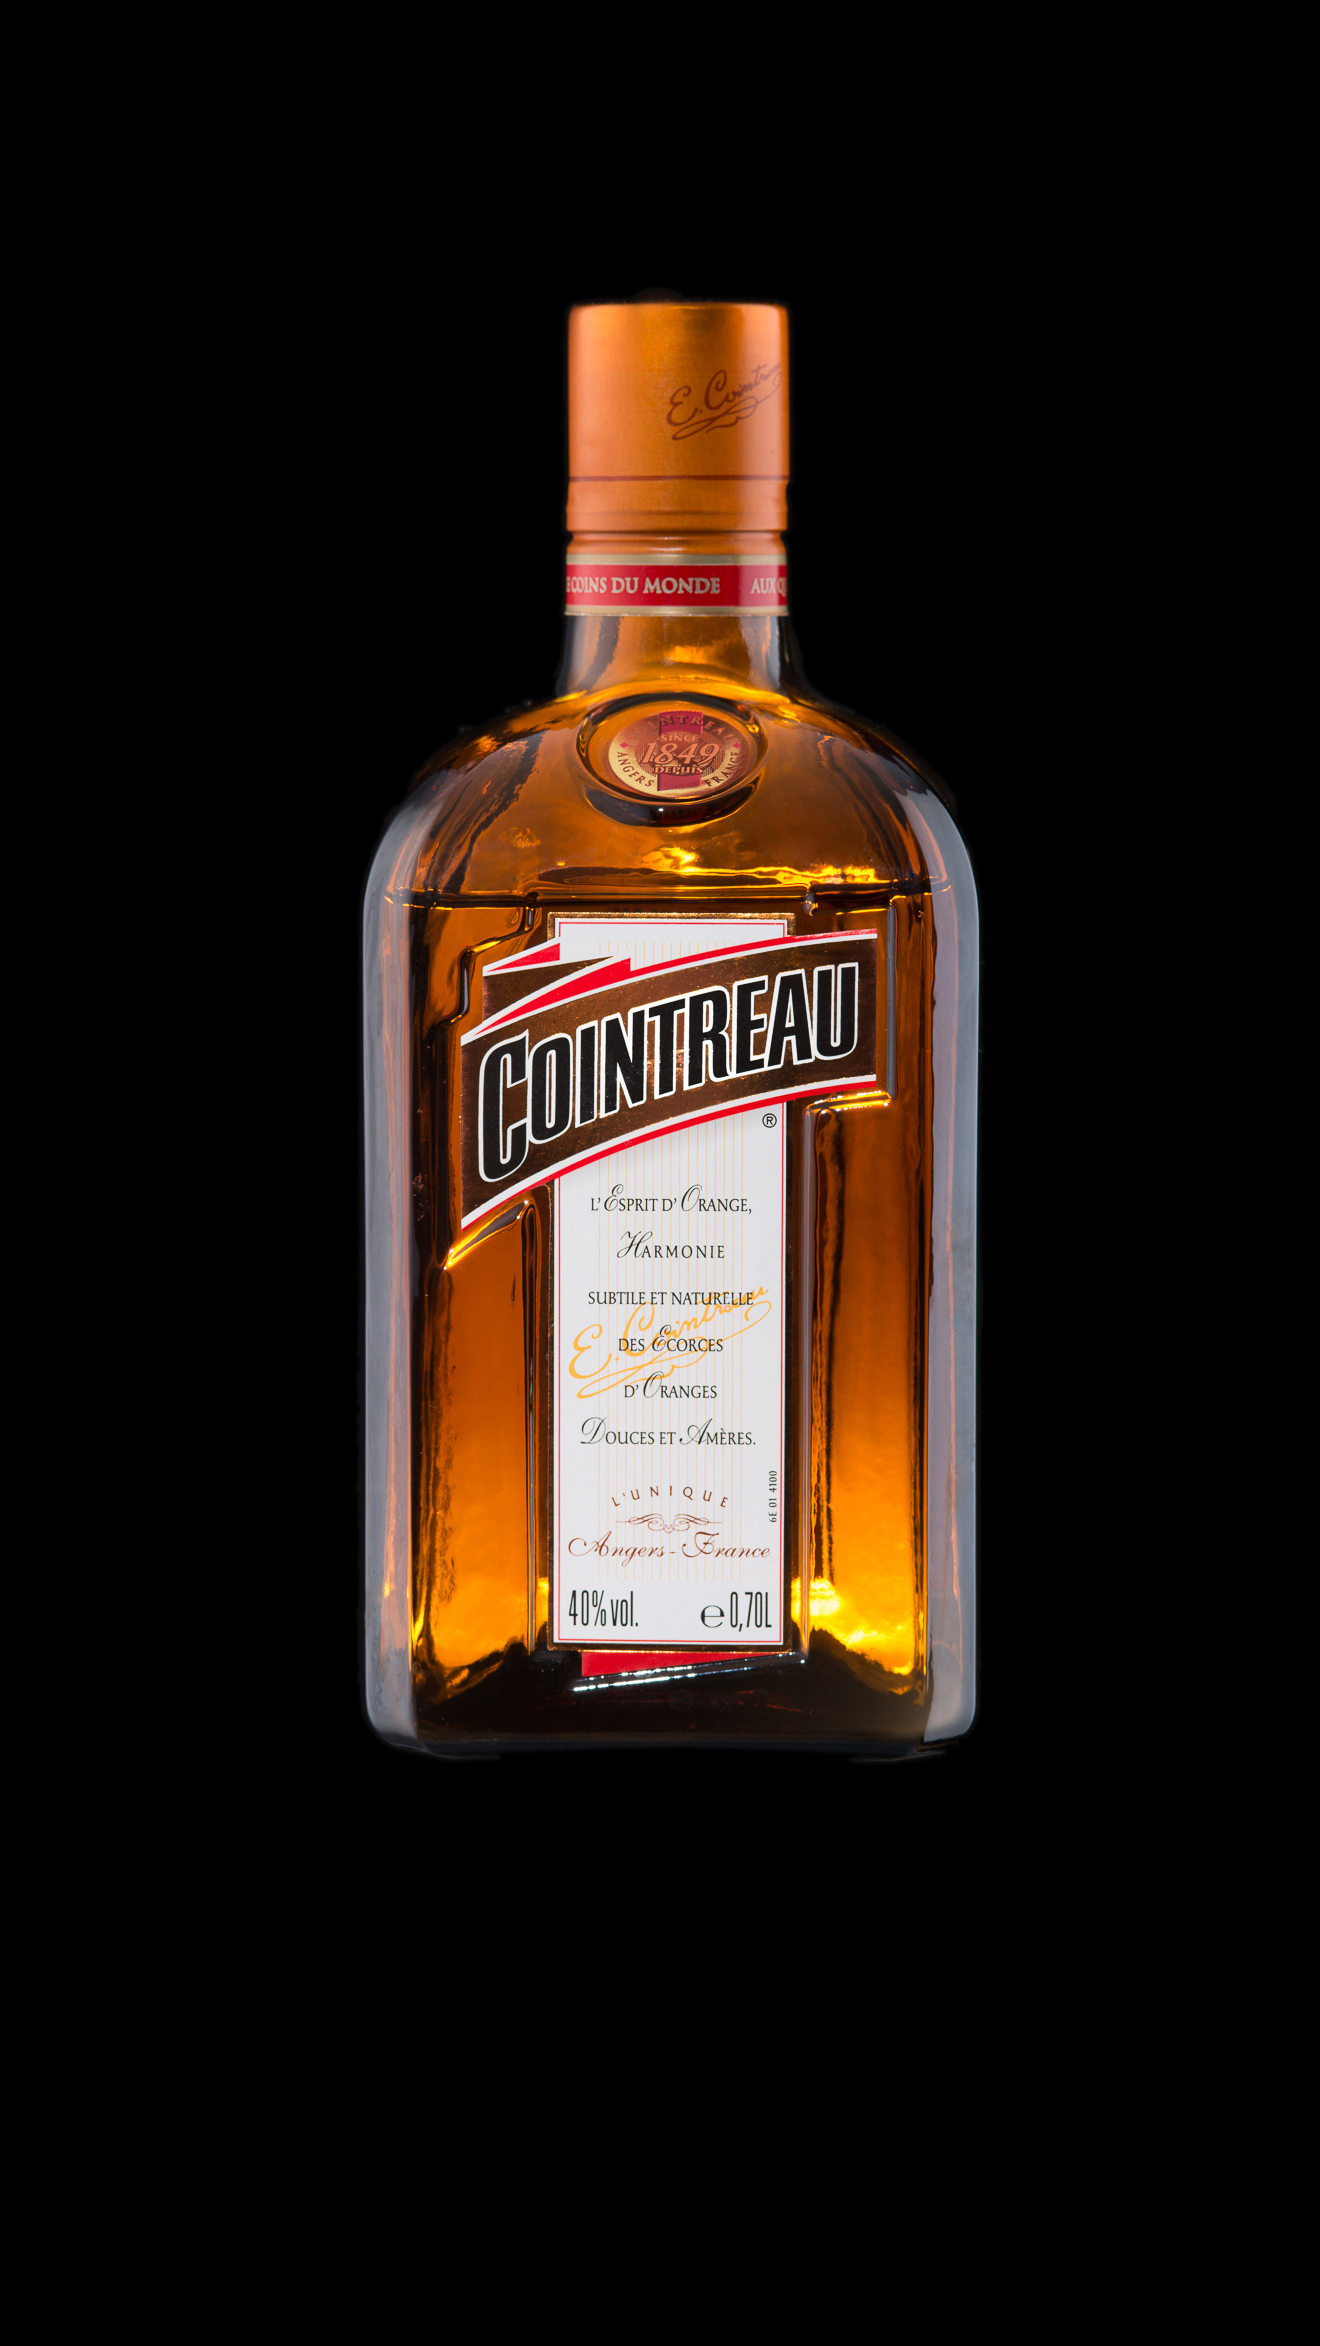 Cointreau bottle on black background food and beverage photography